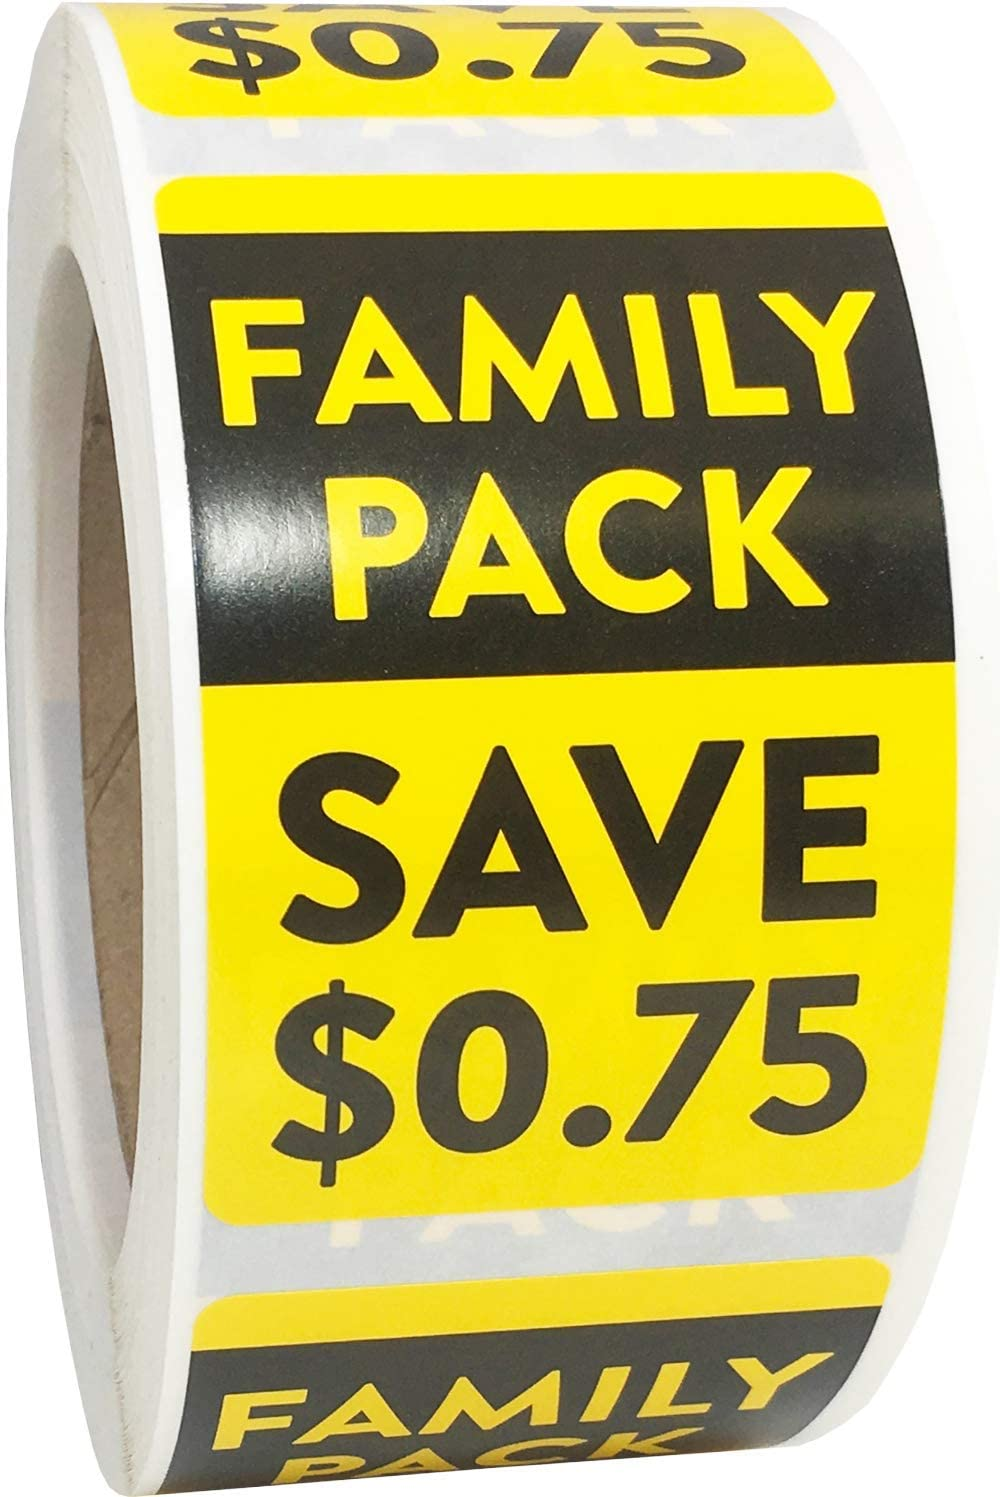 Family Pack Save $.75 Grocery Store Food Labels 2 x 3 Inch 500 Total Adhesive Stickers